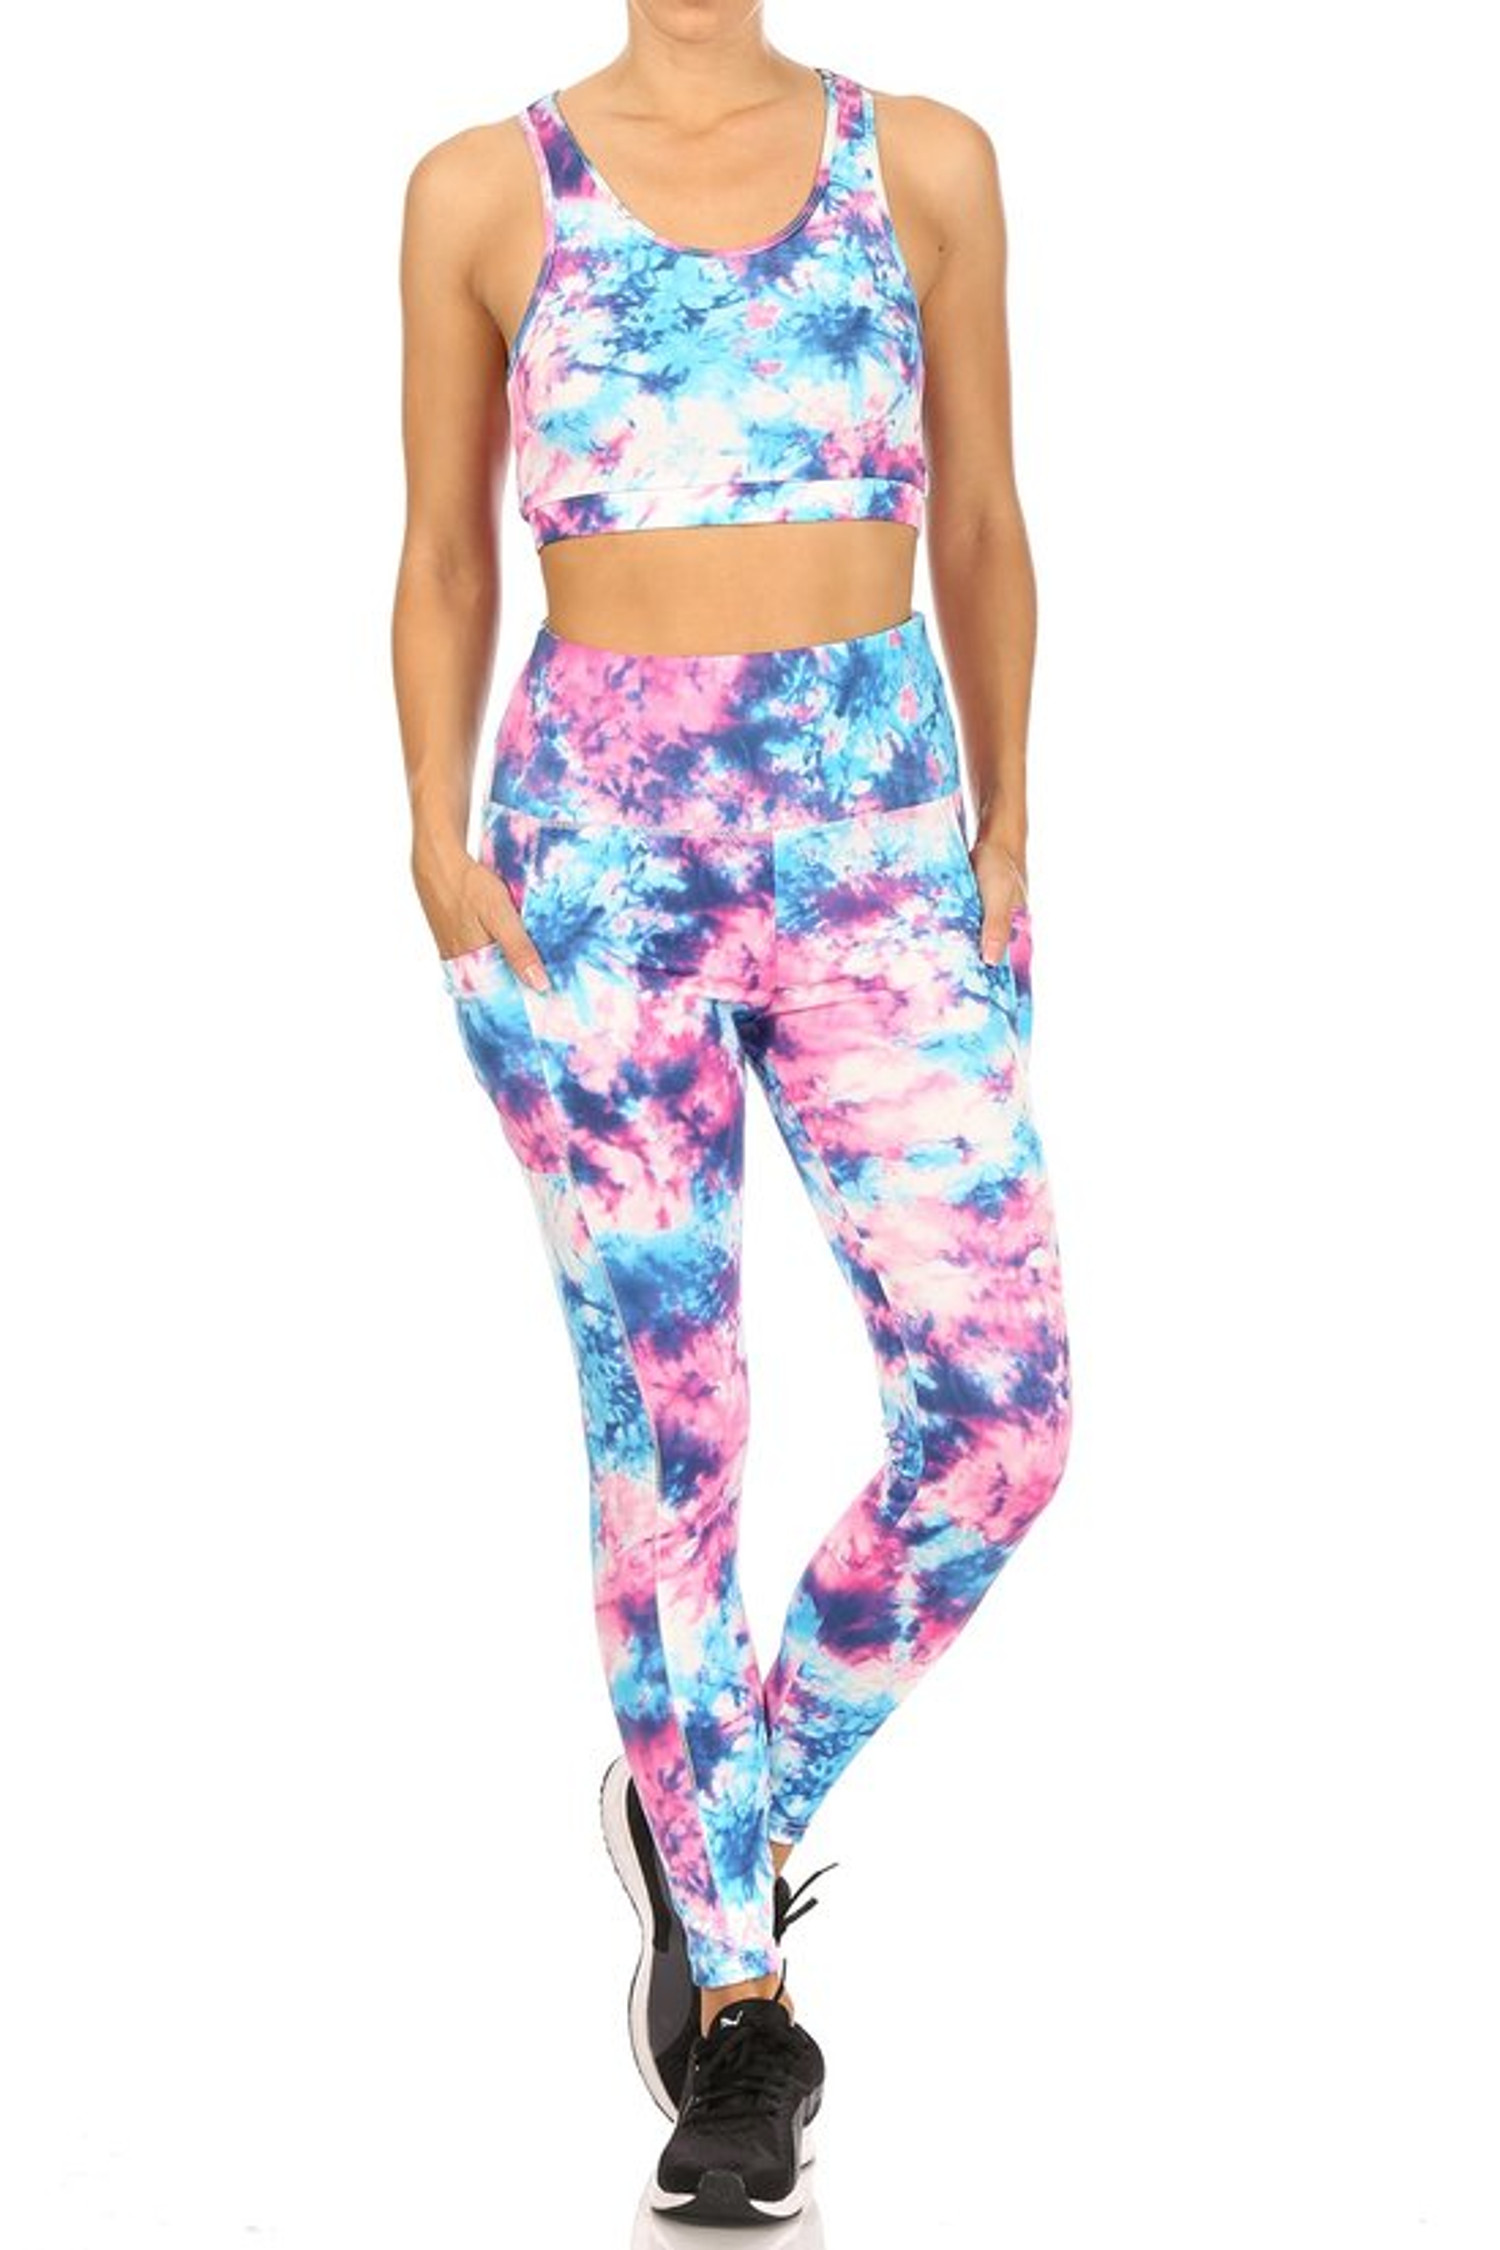 High Waisted Daffodil Tie Dye Sports Leggings and Crop Top - 2 Piece Set